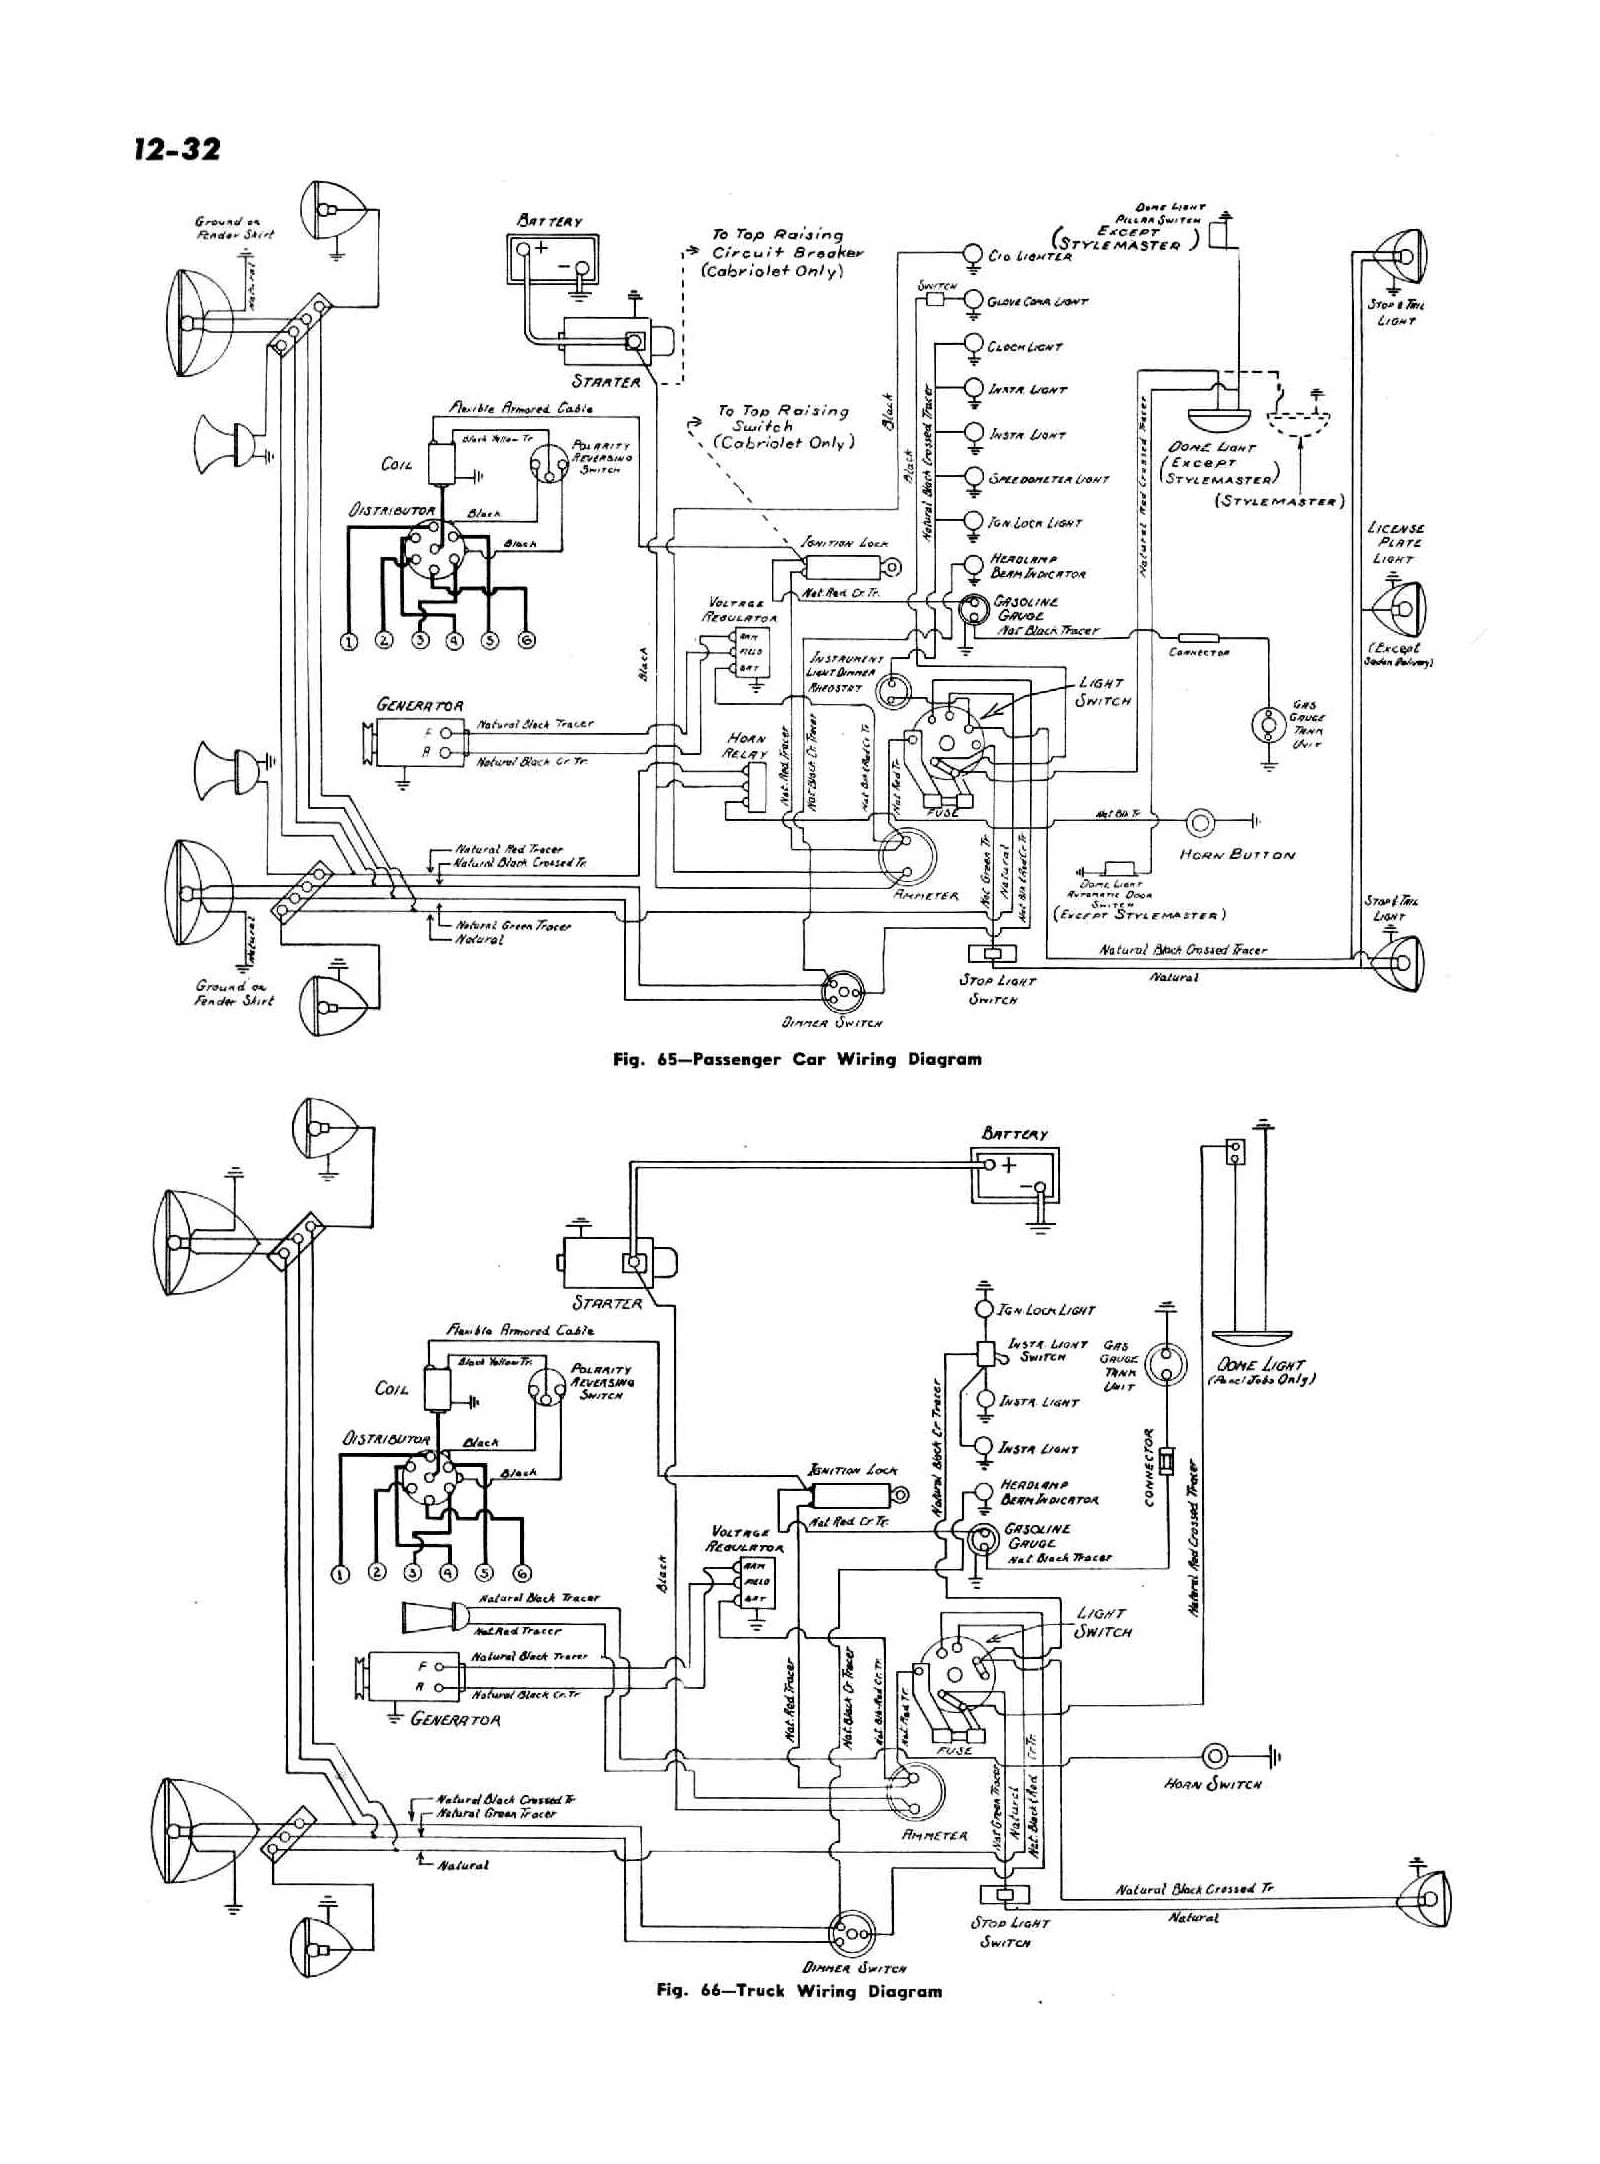 hight resolution of wiring diagram for 1947 chevrolet truck extended wiring diagram voltage coil circuit diagram for the 1947 chevrolet trucks